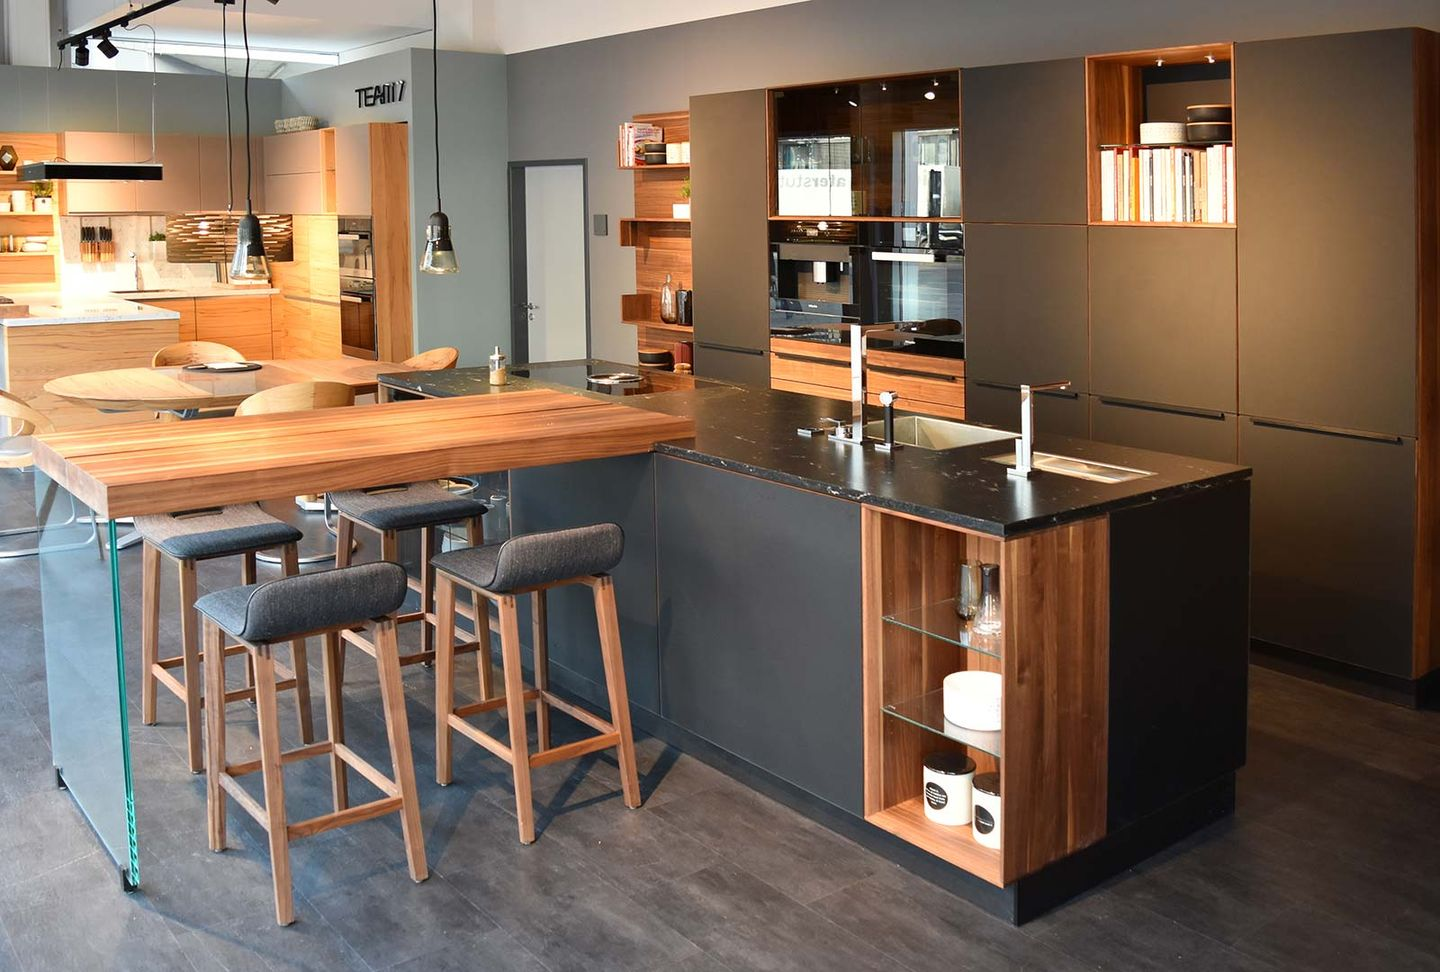 black line designer kitchen at TEAM 7 store Stuttgart